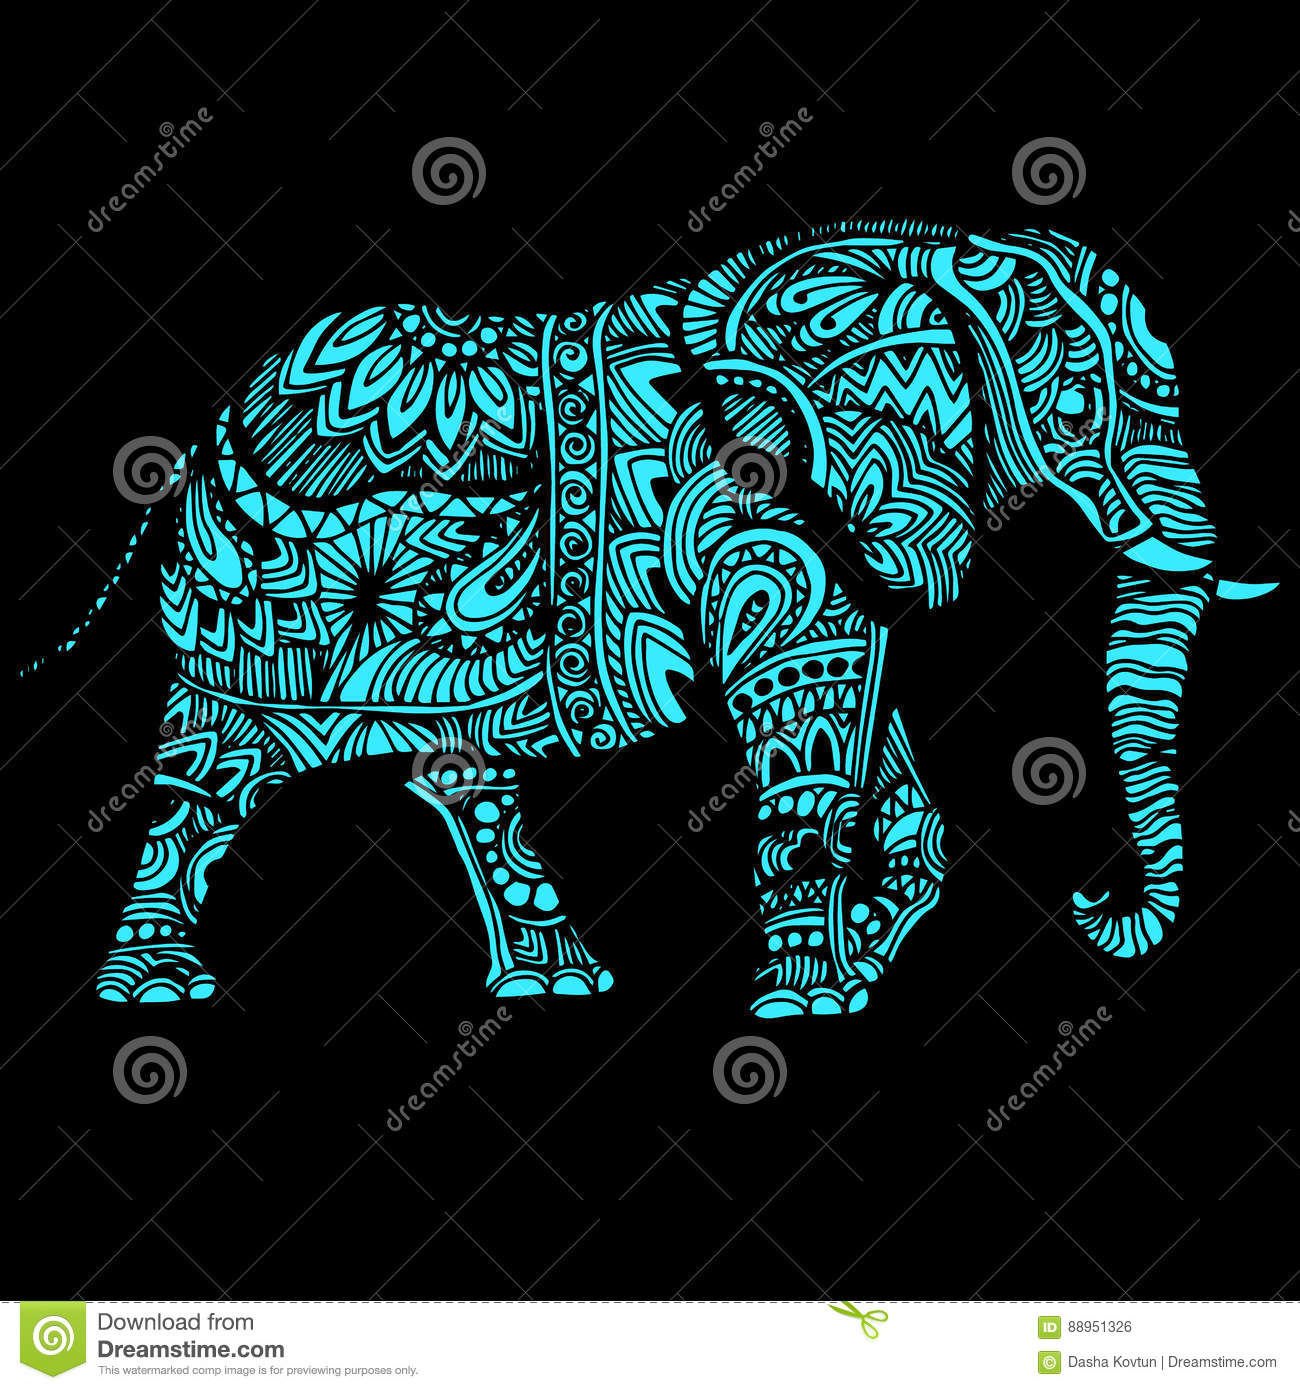 Elephant Illustration for design pattern textiles. Used for children clothes, pajamas